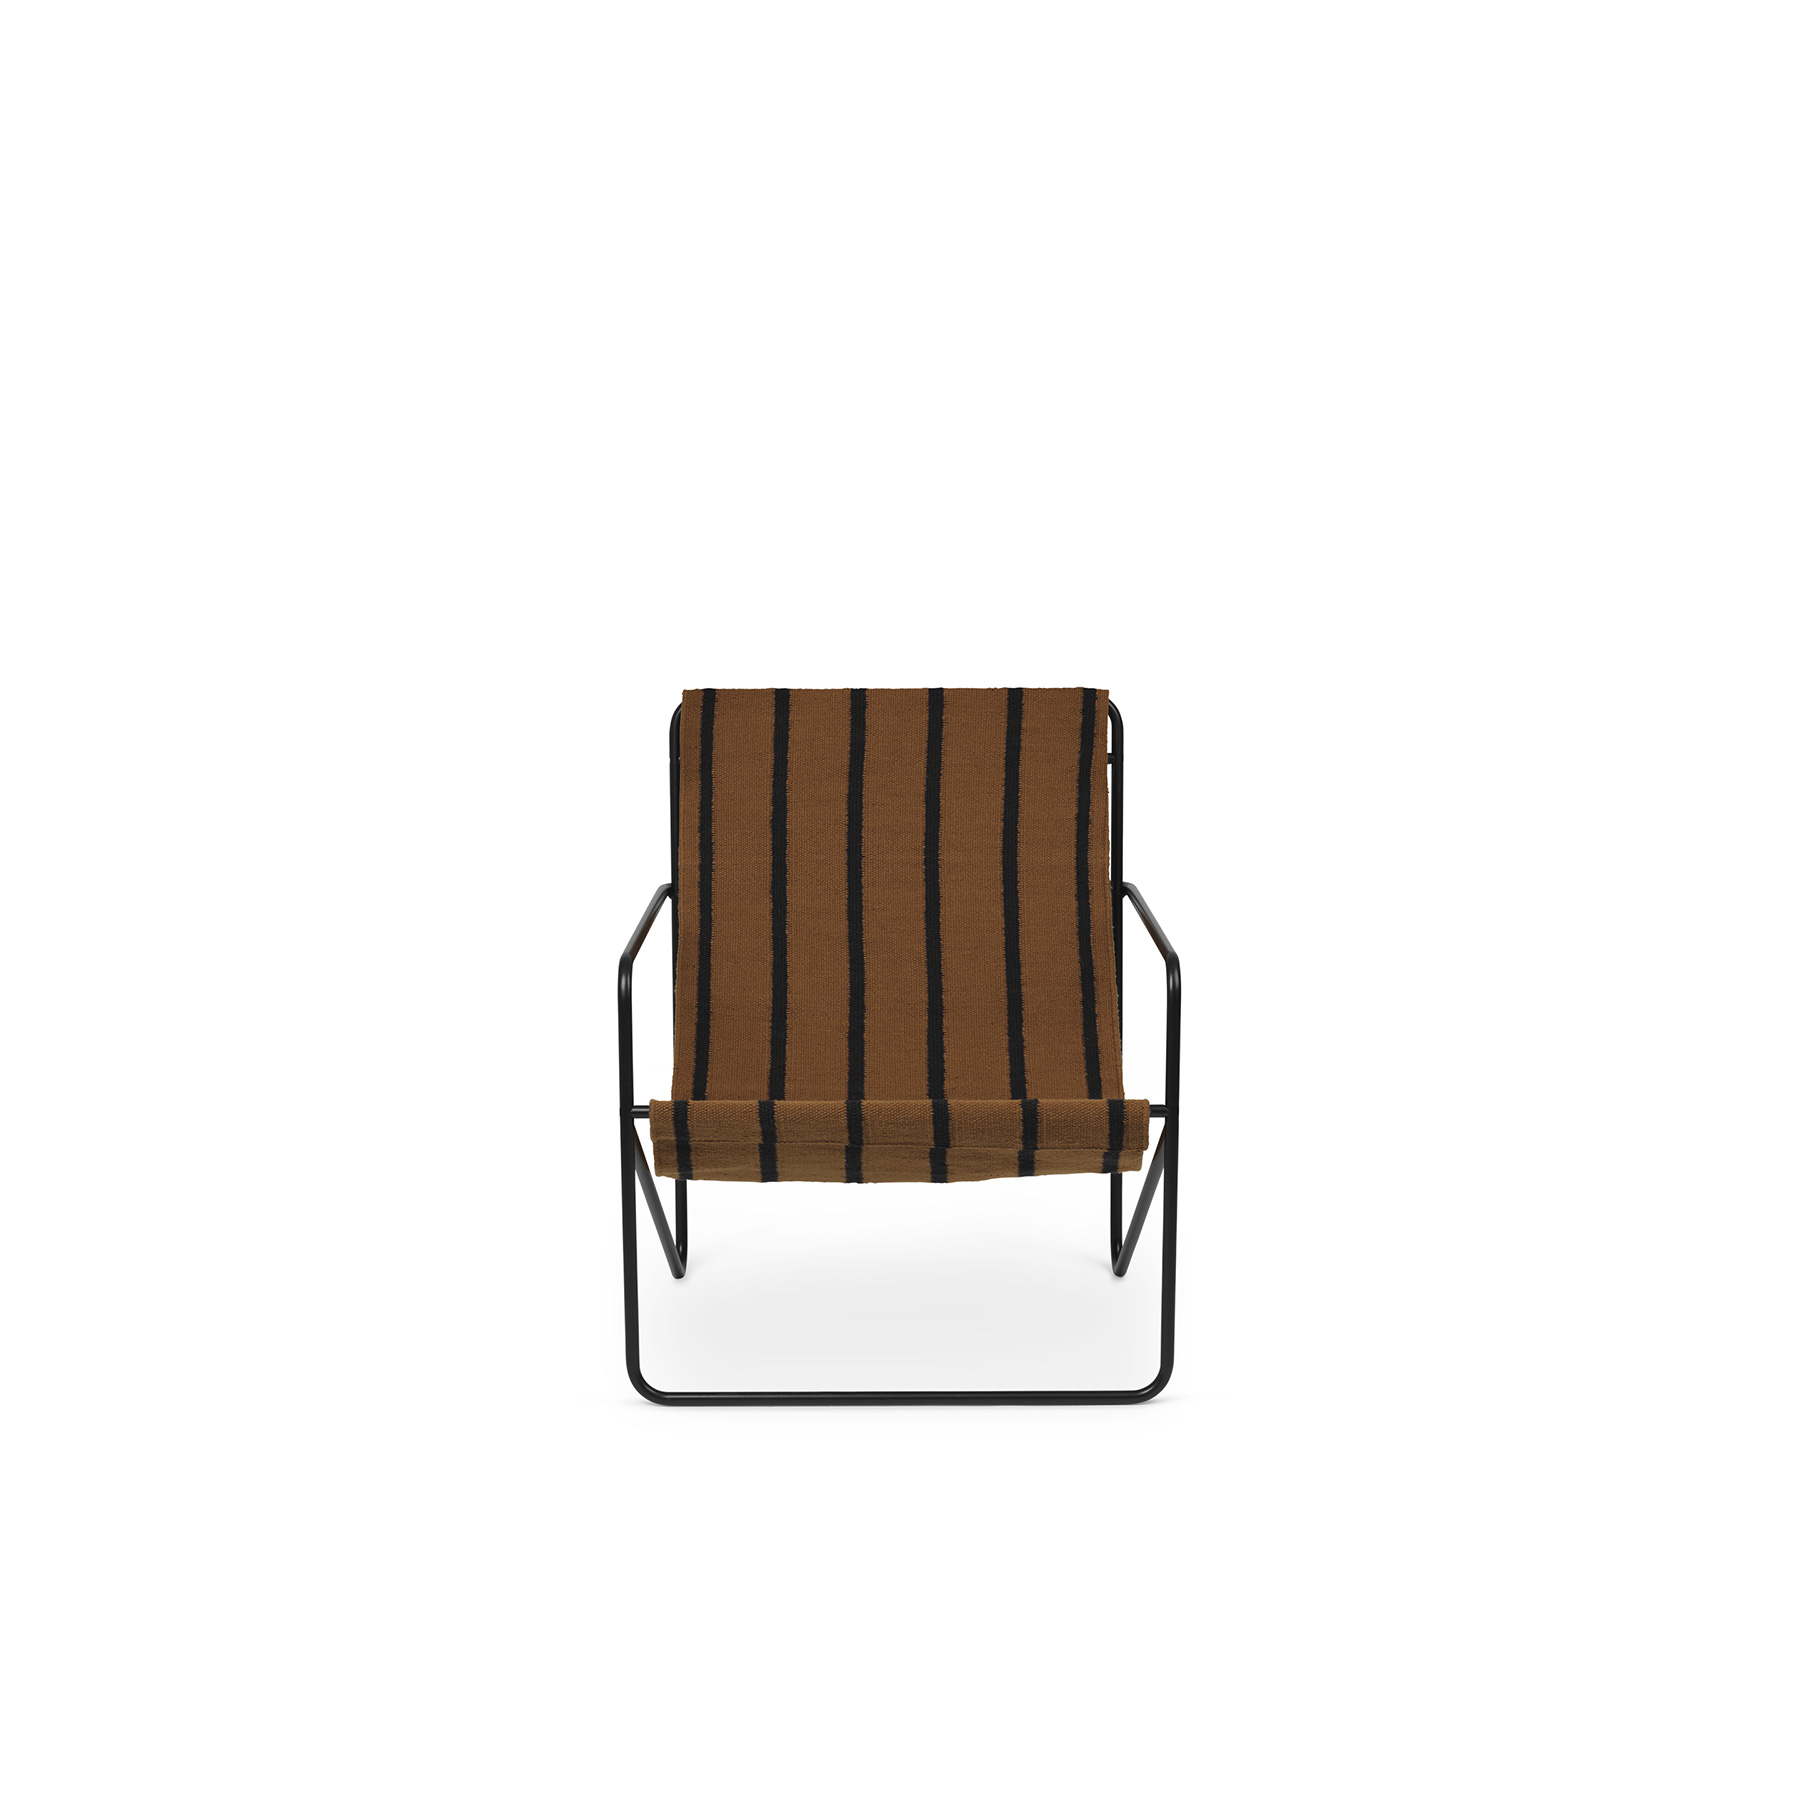 Desert Lounge Chair Stripes - <p>A Modernist chair with a graceful profile, Desert Chair is crafted from a tubular powder-coated steel frame in colours Black or Cashmere, holding an interchangeable woven textile seat made from recycled plastic bottles, available in four designs: Soil, Stripes, Shapes or Solid Cashmere. Suitable for use both indoors and out, the lounge design invites relaxation. Just sit back and enjoy.</p>  | Matter of Stuff